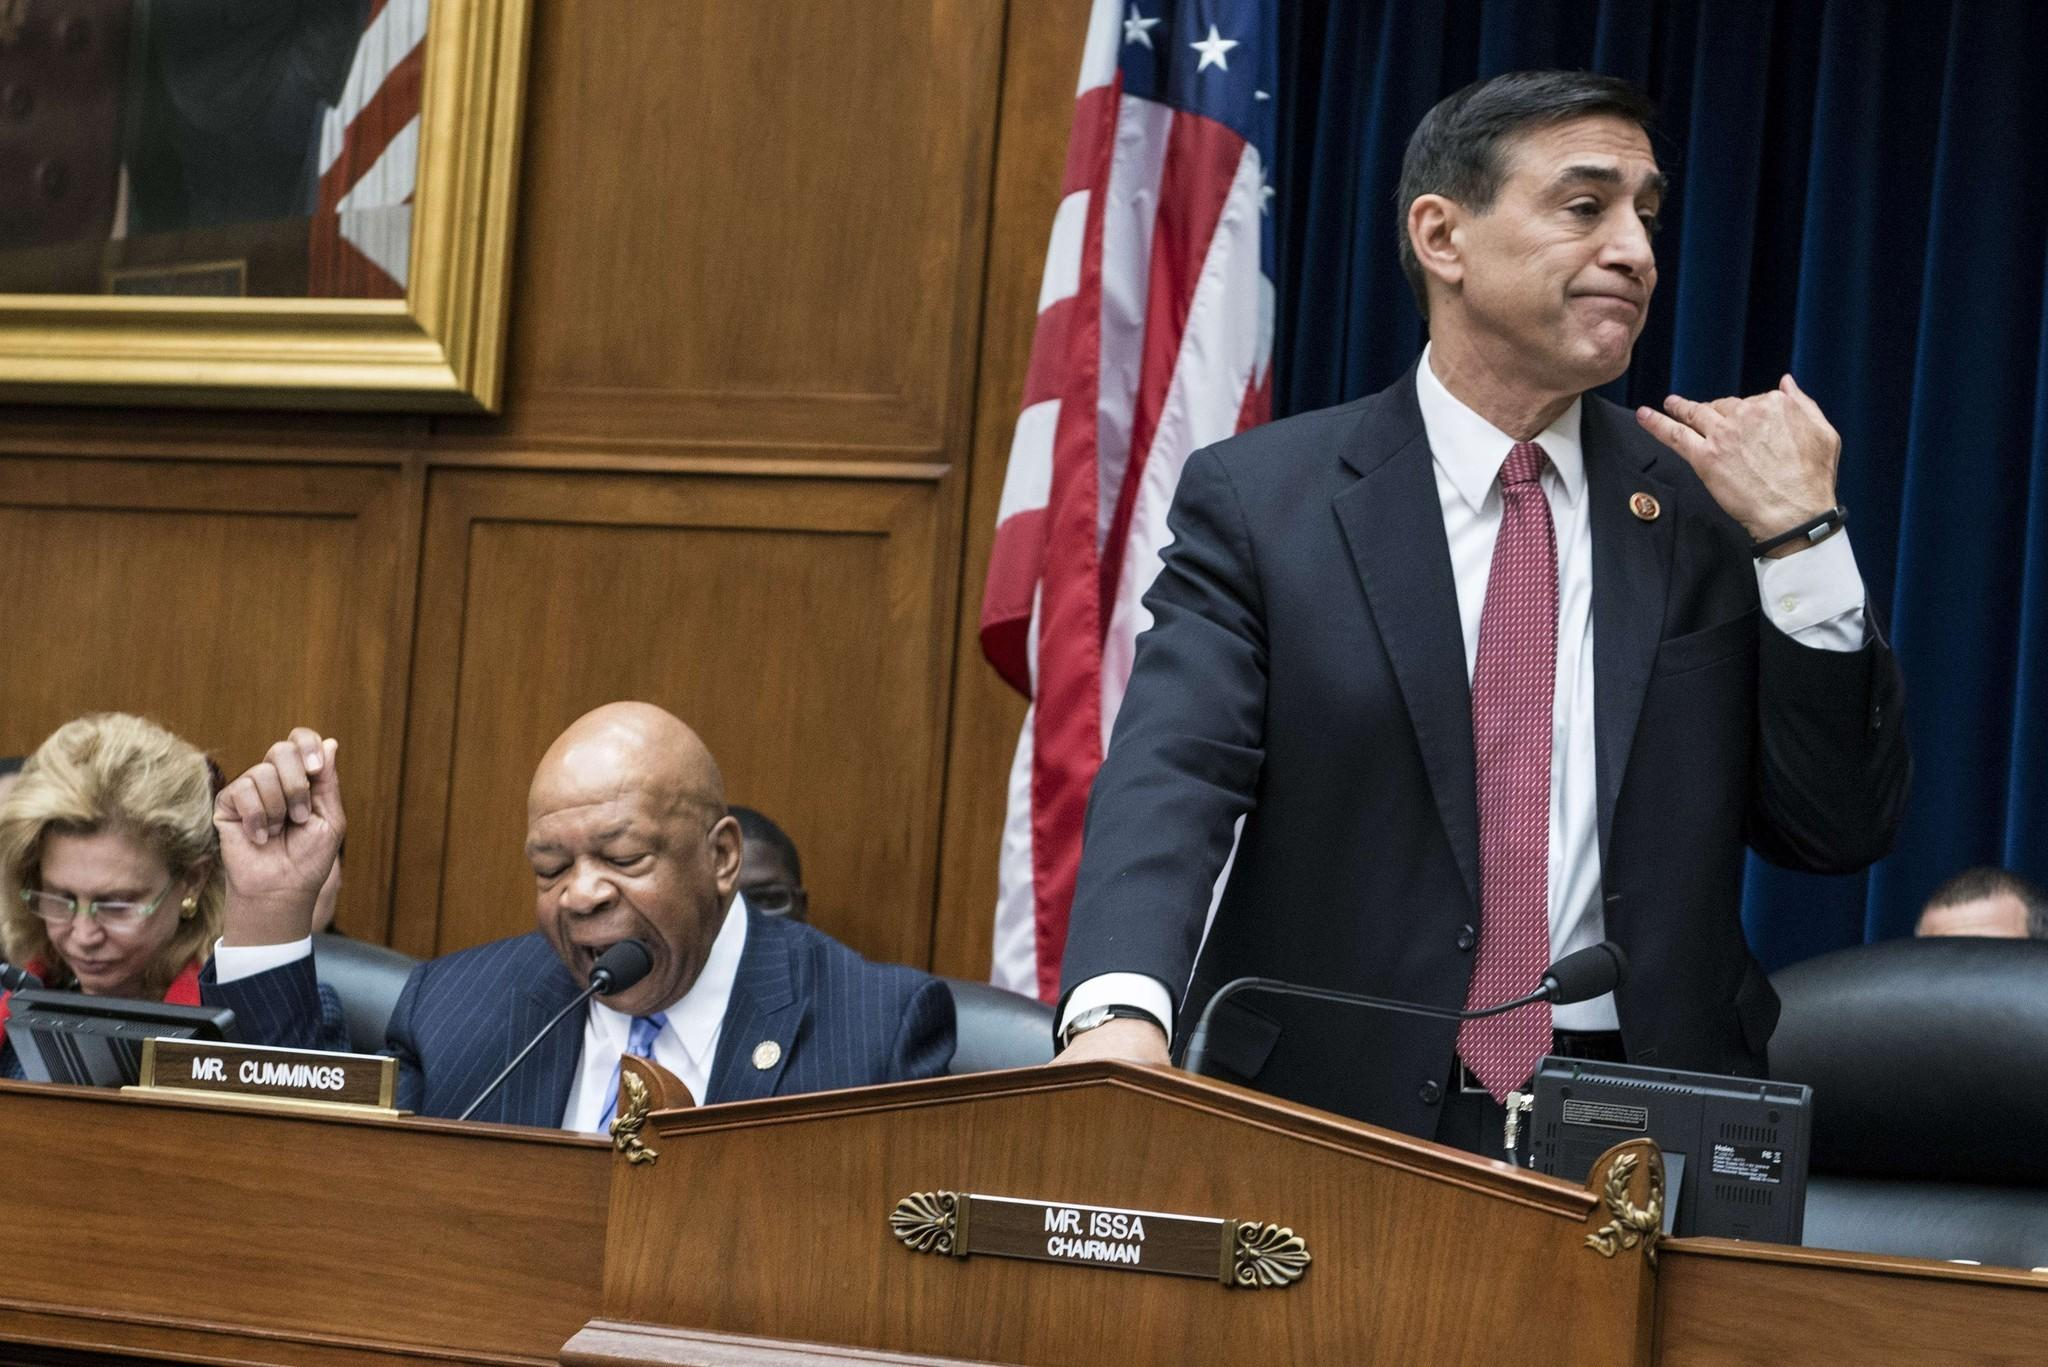 Rep. Darrell Issa motions to Republican staff members to cut off the microphone of Rep. Elijah E. Cummings, left, during a hearing of the House Oversight and Government Reform Committee on Wednesday.